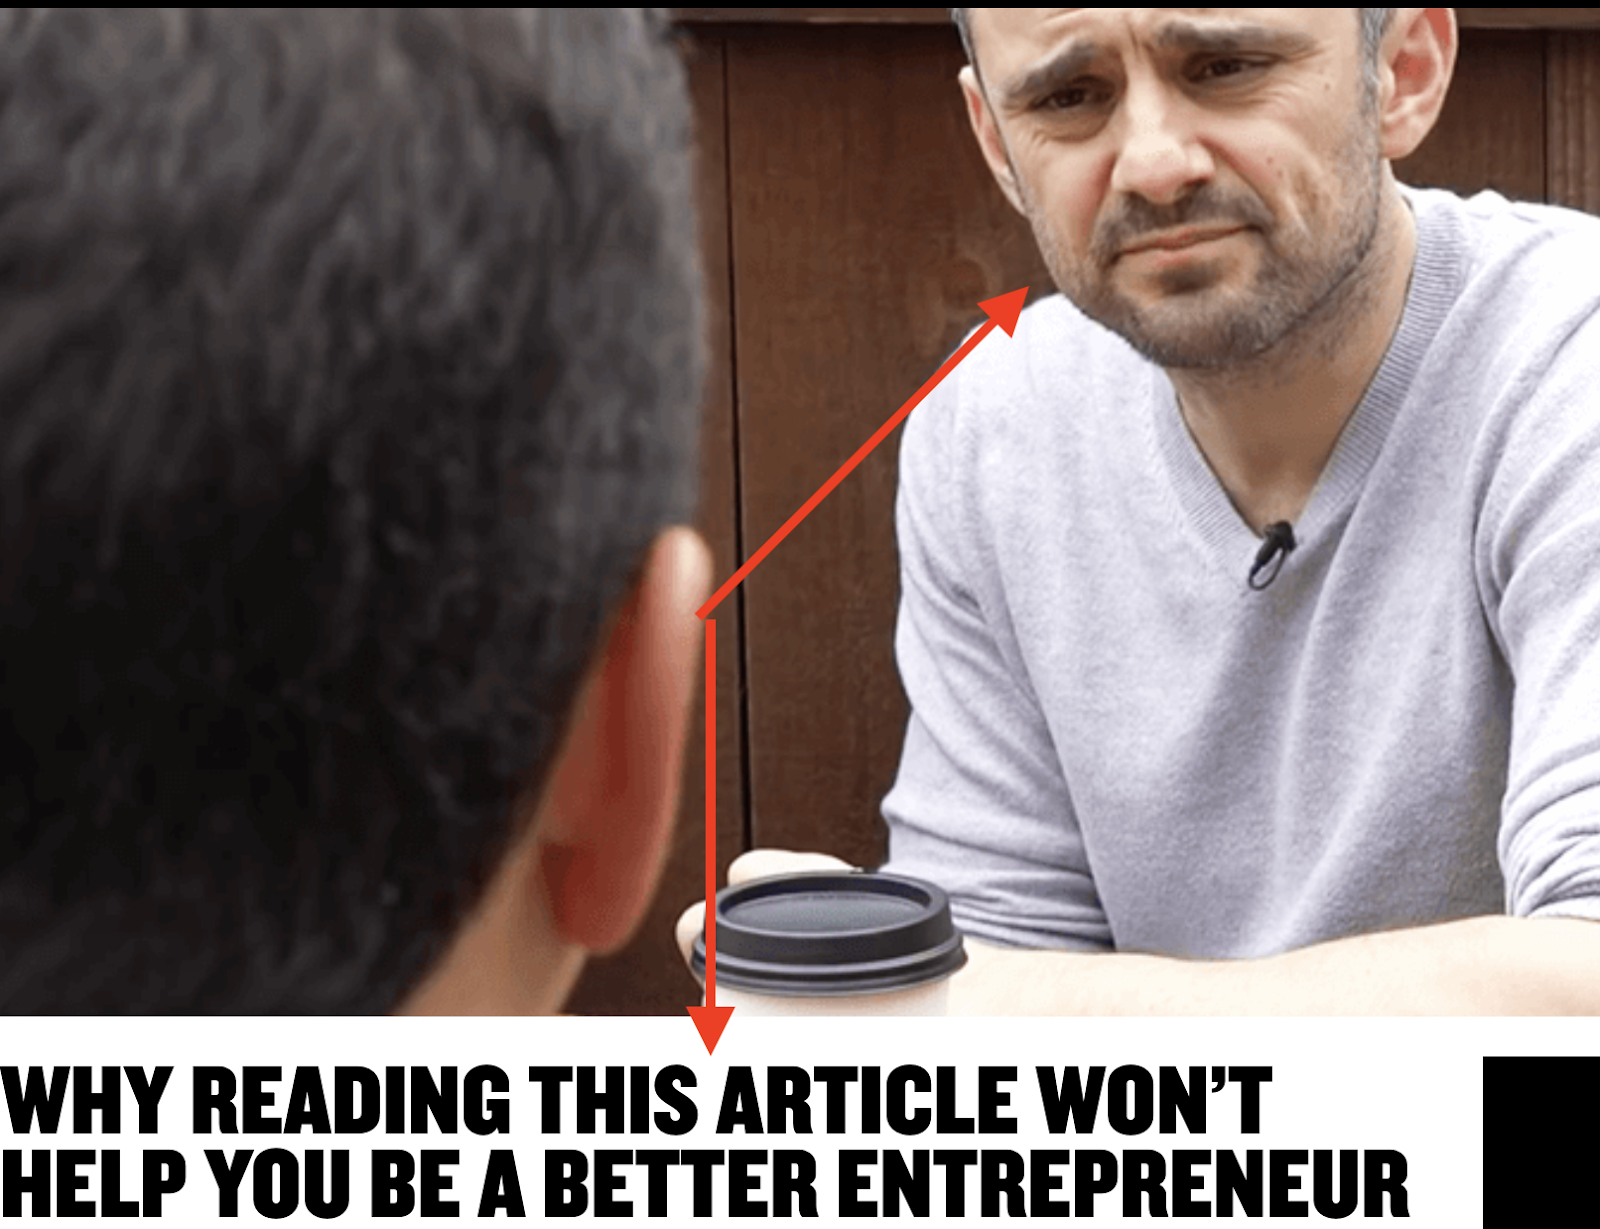 Gary Vaynerchuks banner on his article